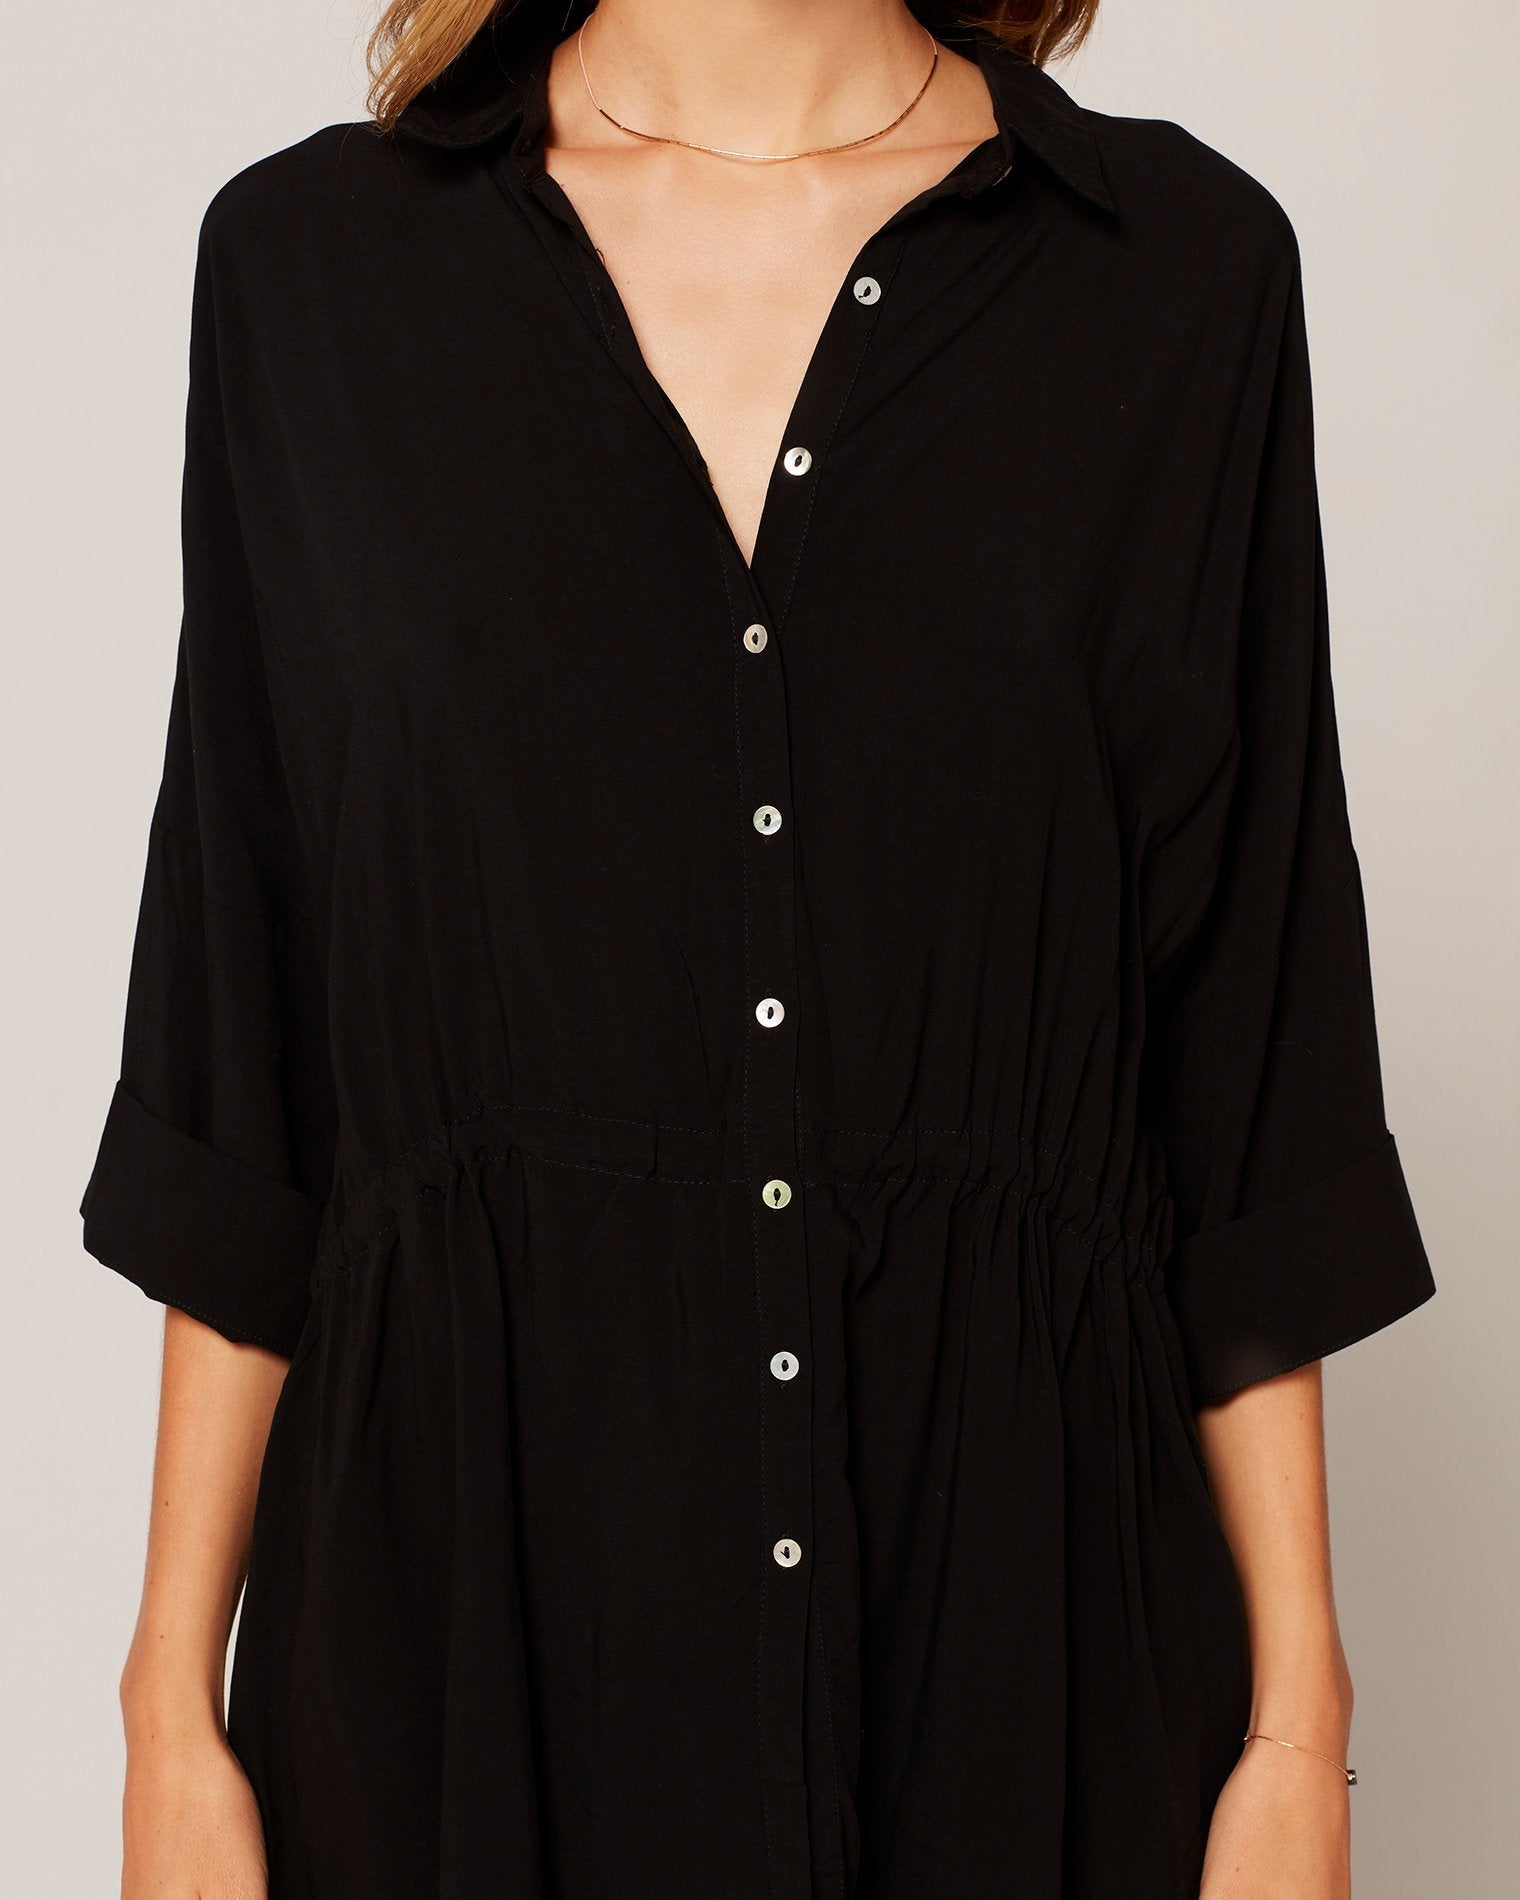 L*Space Pacifica Tunic in Black